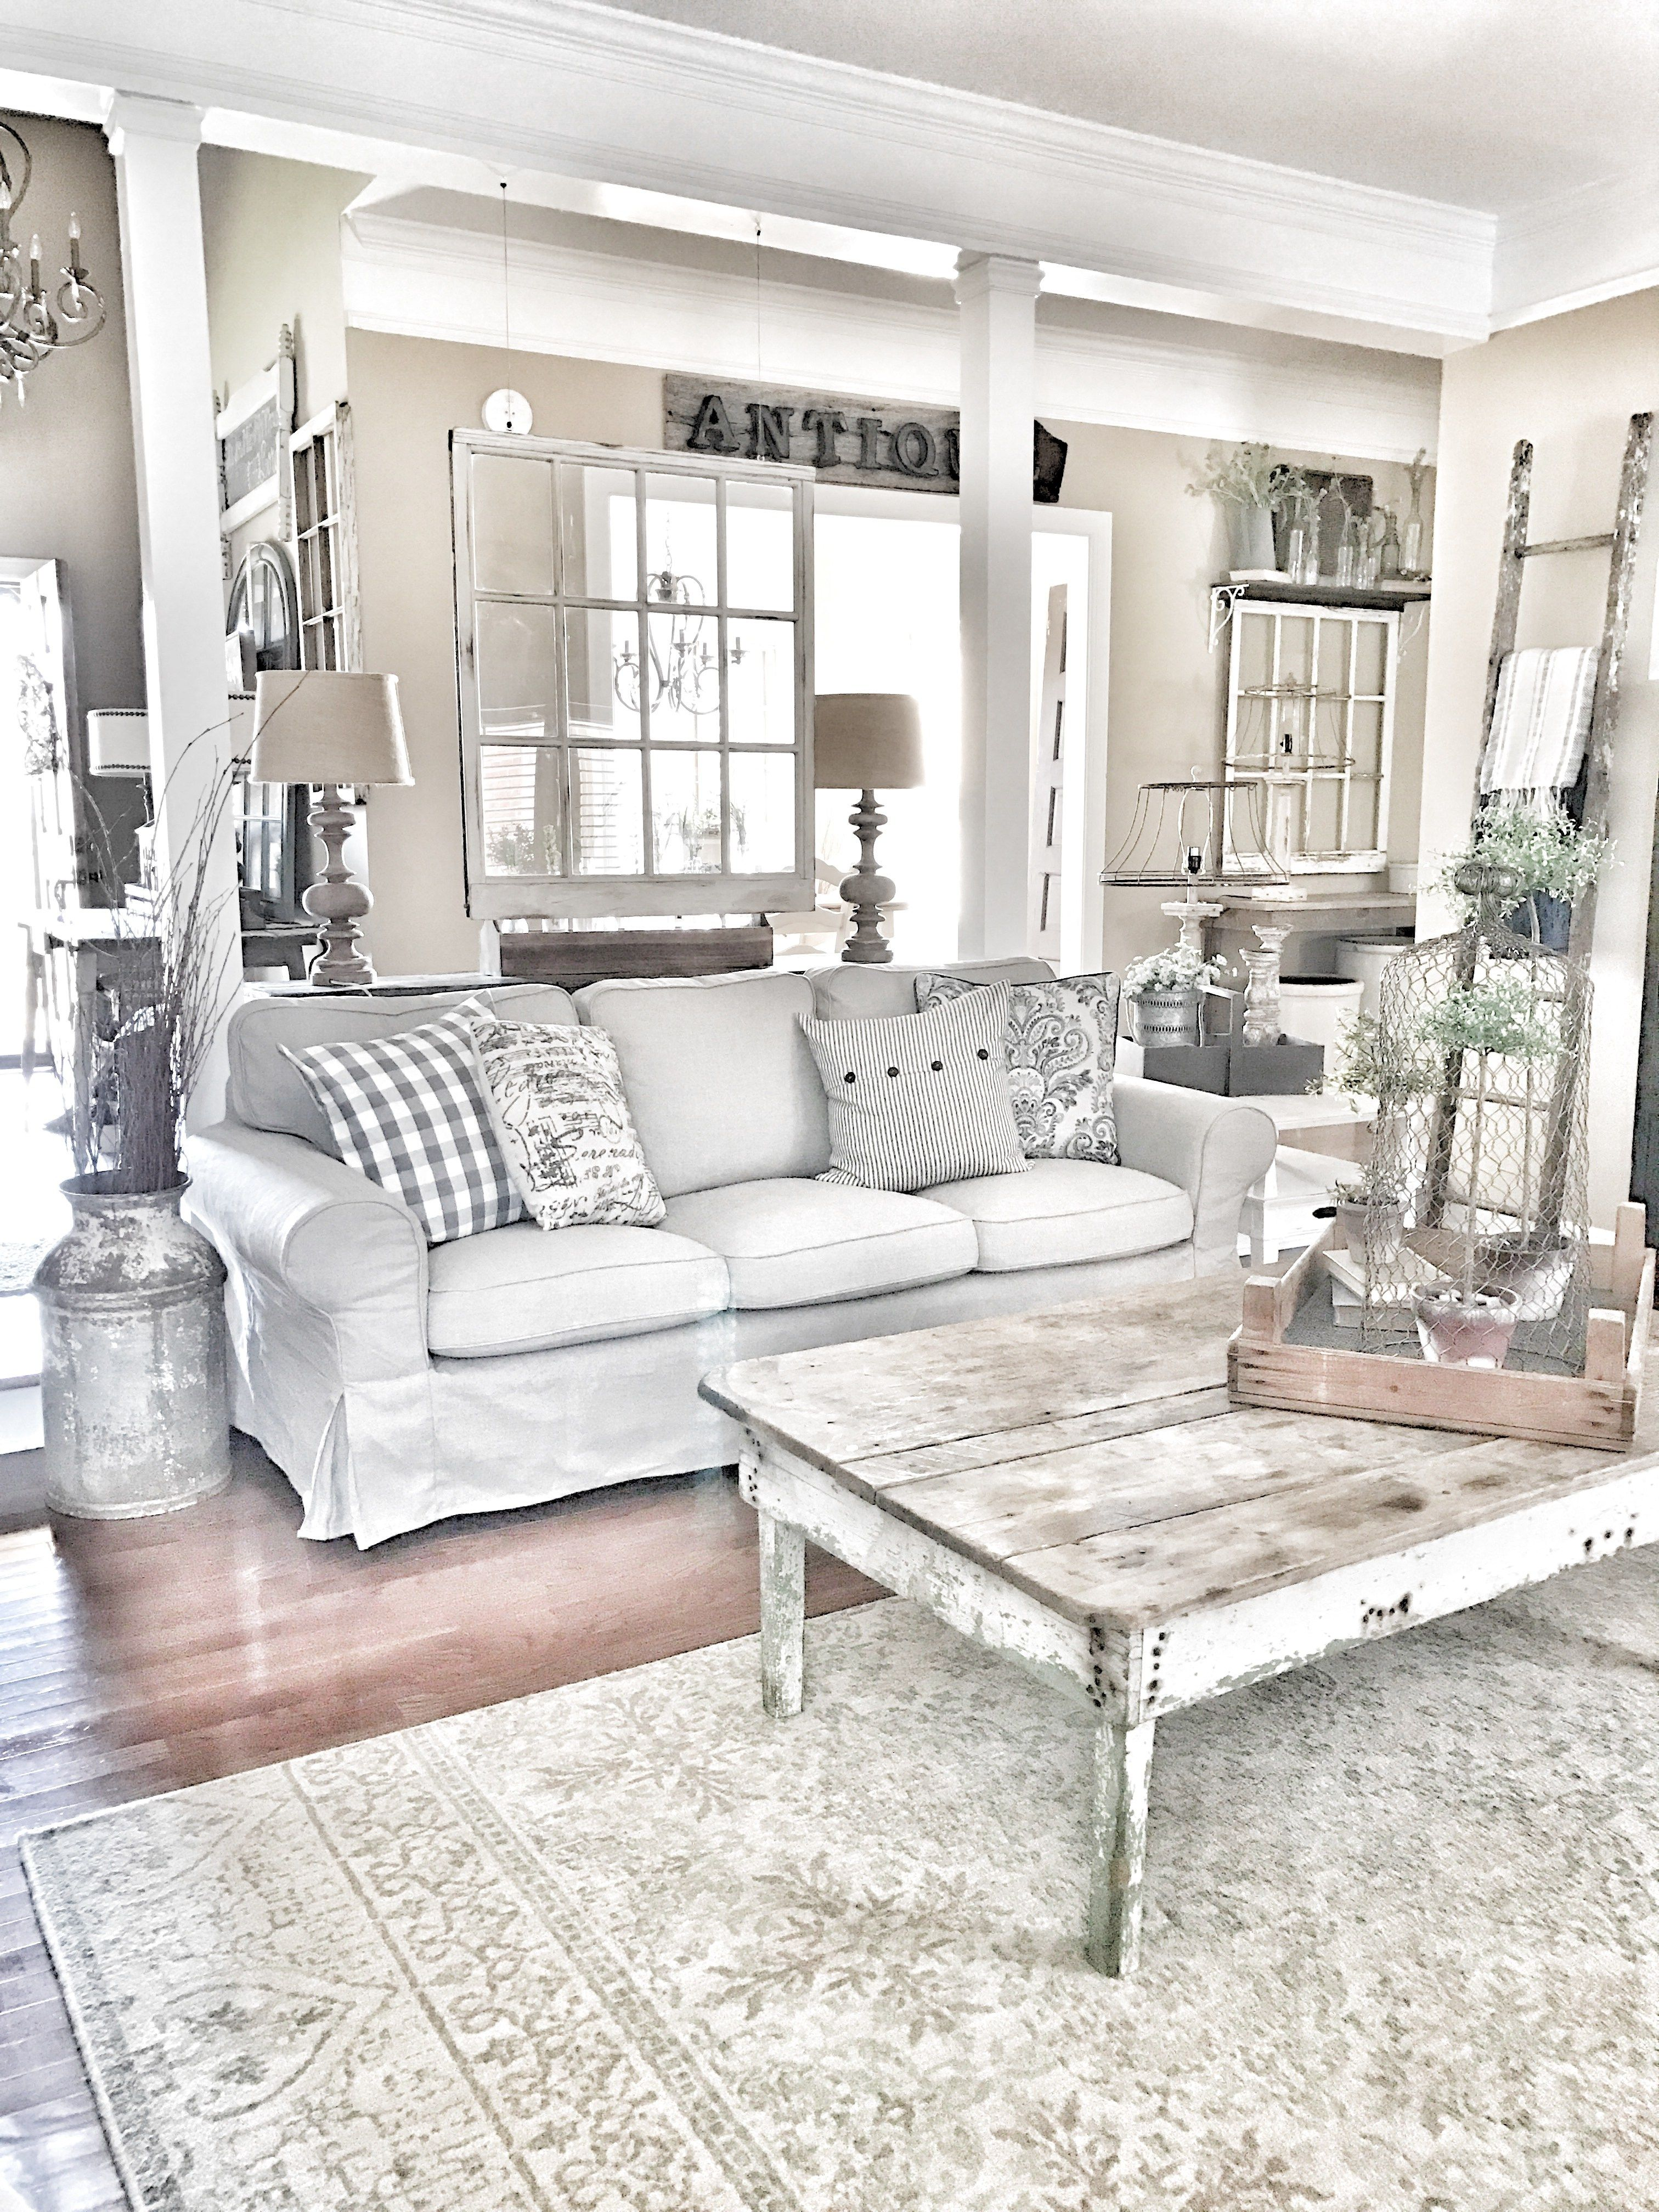 4 Farmhouse Living Room Maintenance Mistakes New Owners